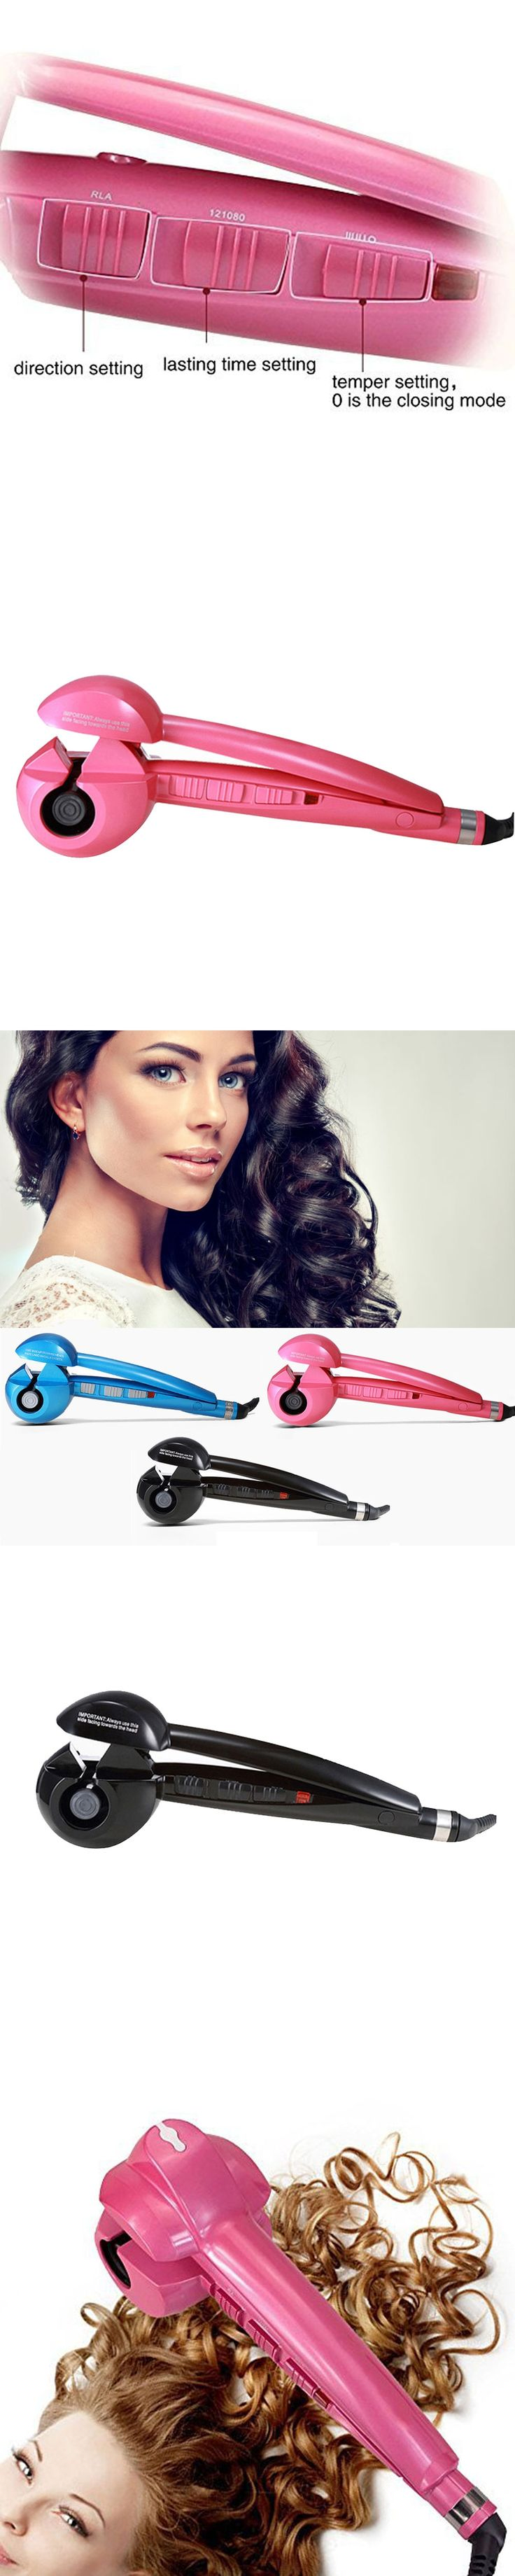 Magic Automatic Hair Curler Styler Heating Curling Hair Styling Tools Iron Hairs Curl Wave Machine EU US UK Plug Promotion